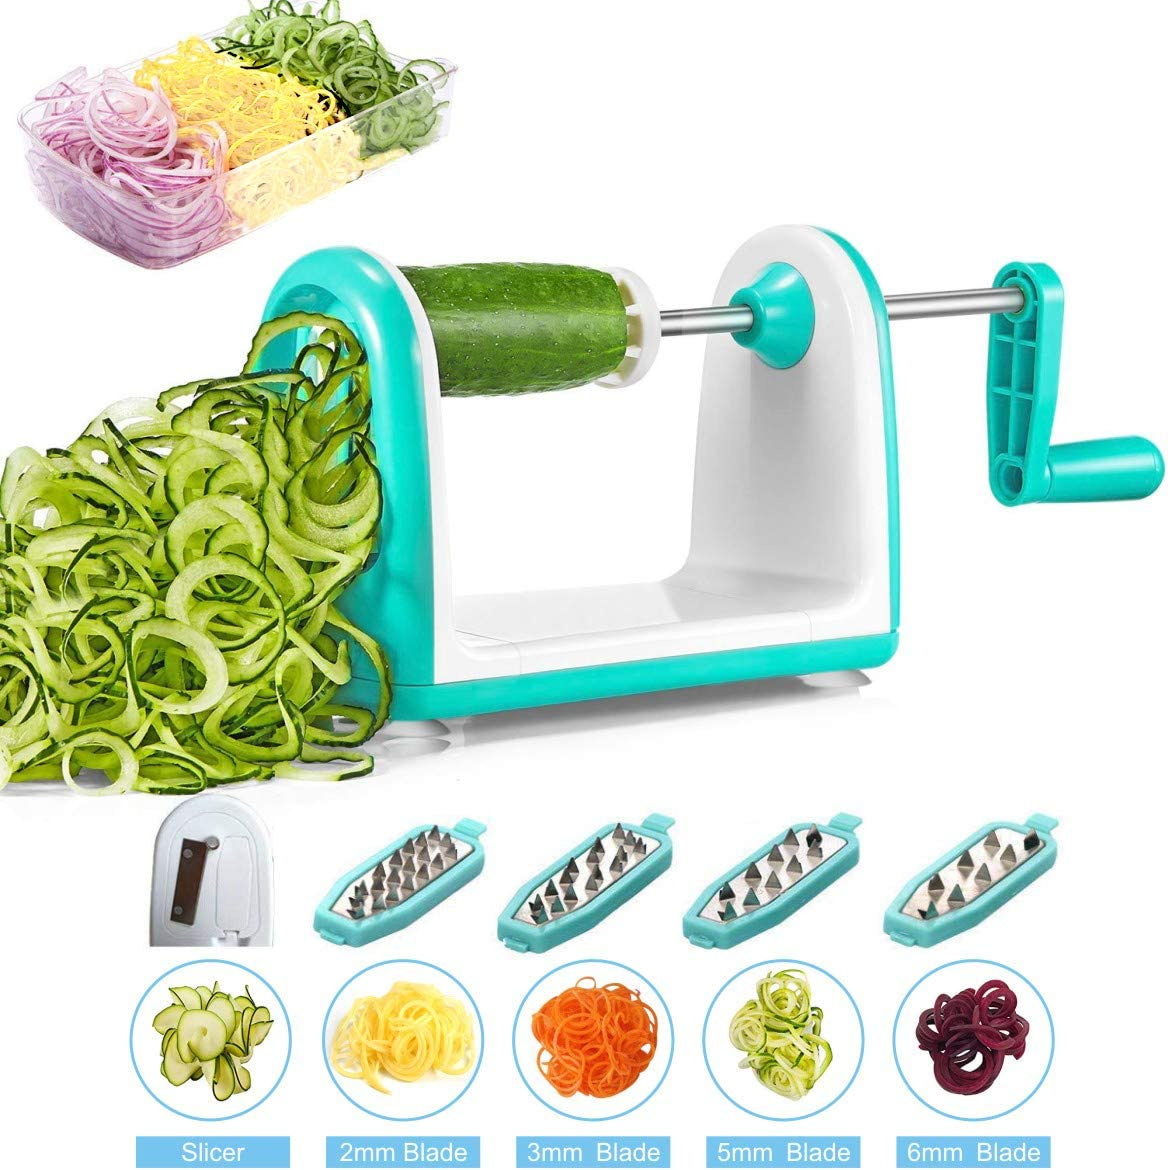 iNeibo Spiralizer Vegetable Slicer 5 Stainless Blade Spiral Slicer Veggie Spaghetti Maker with Food Container for Zucchini Noodles, Pasta, Salad